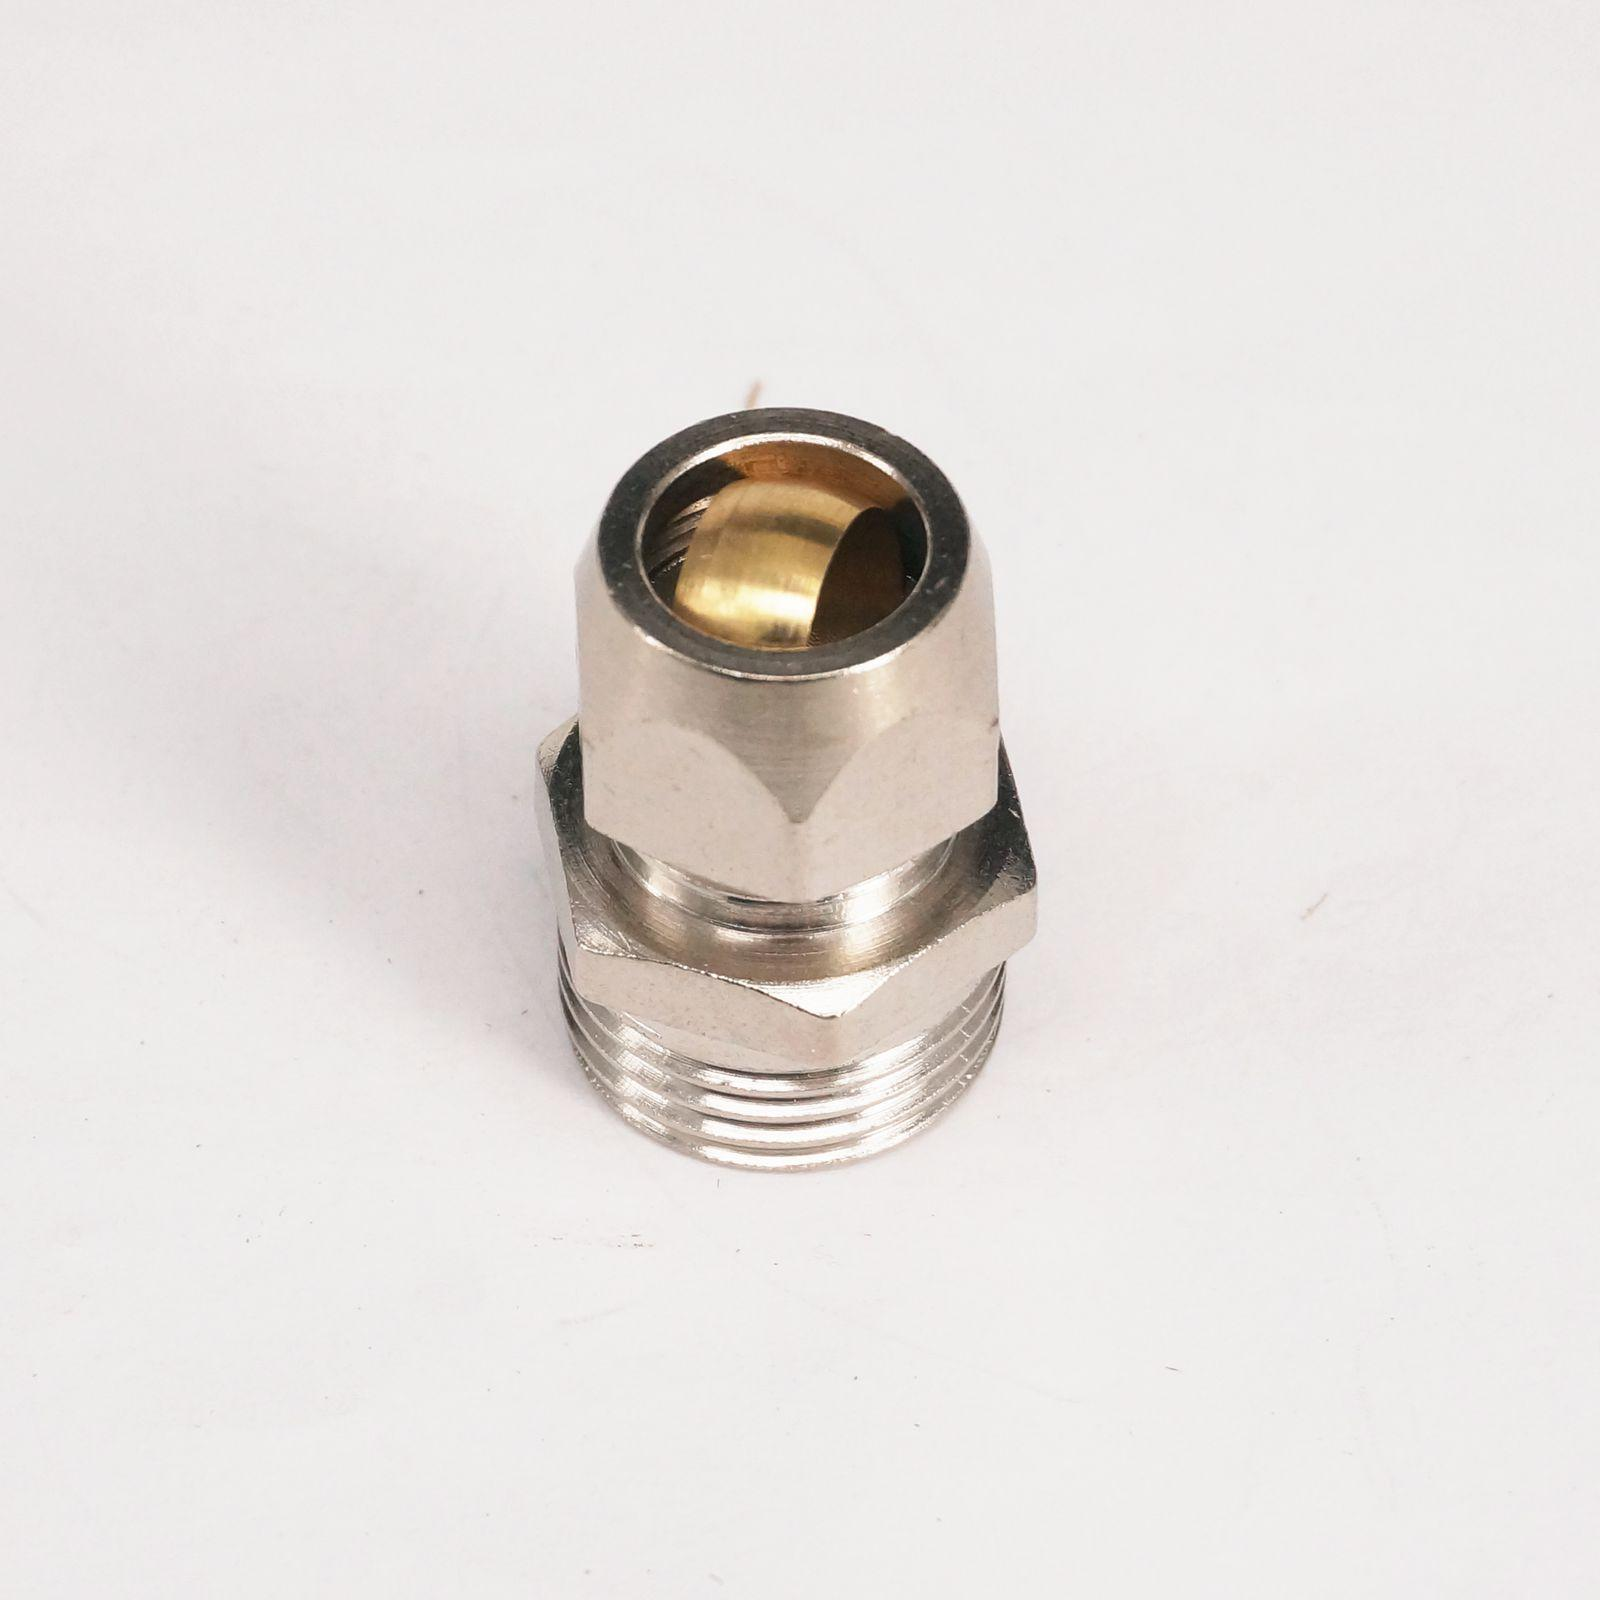 5pcs 1/2 BSP Male Thread Brass Fit 12mm OD Tube Coupler Adapter Connector Compression fitting For Tubing